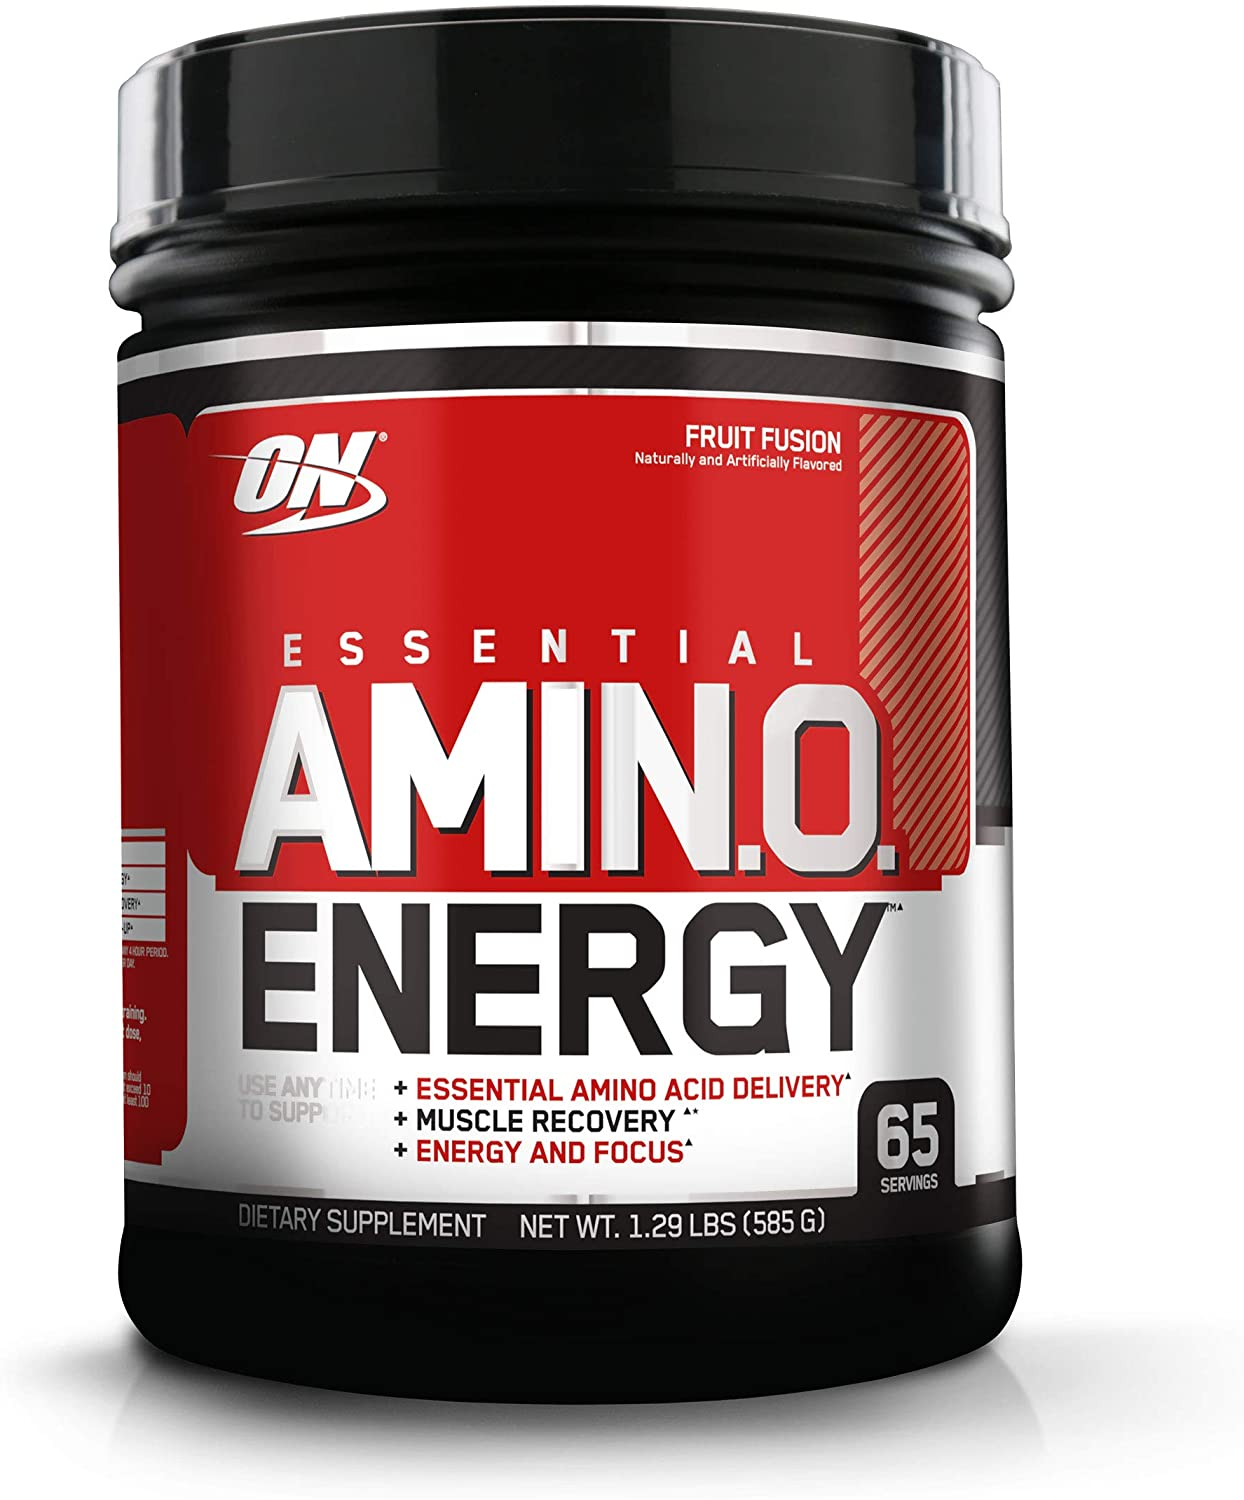 Optimum Nutrition Amino Energy - Pre Workout with Green Tea, BCAA, Amino Acids, Keto Friendly, Green Coffee Extract, Energy Powder - Fruit Fusion, 65 Servings: Health & Personal Care